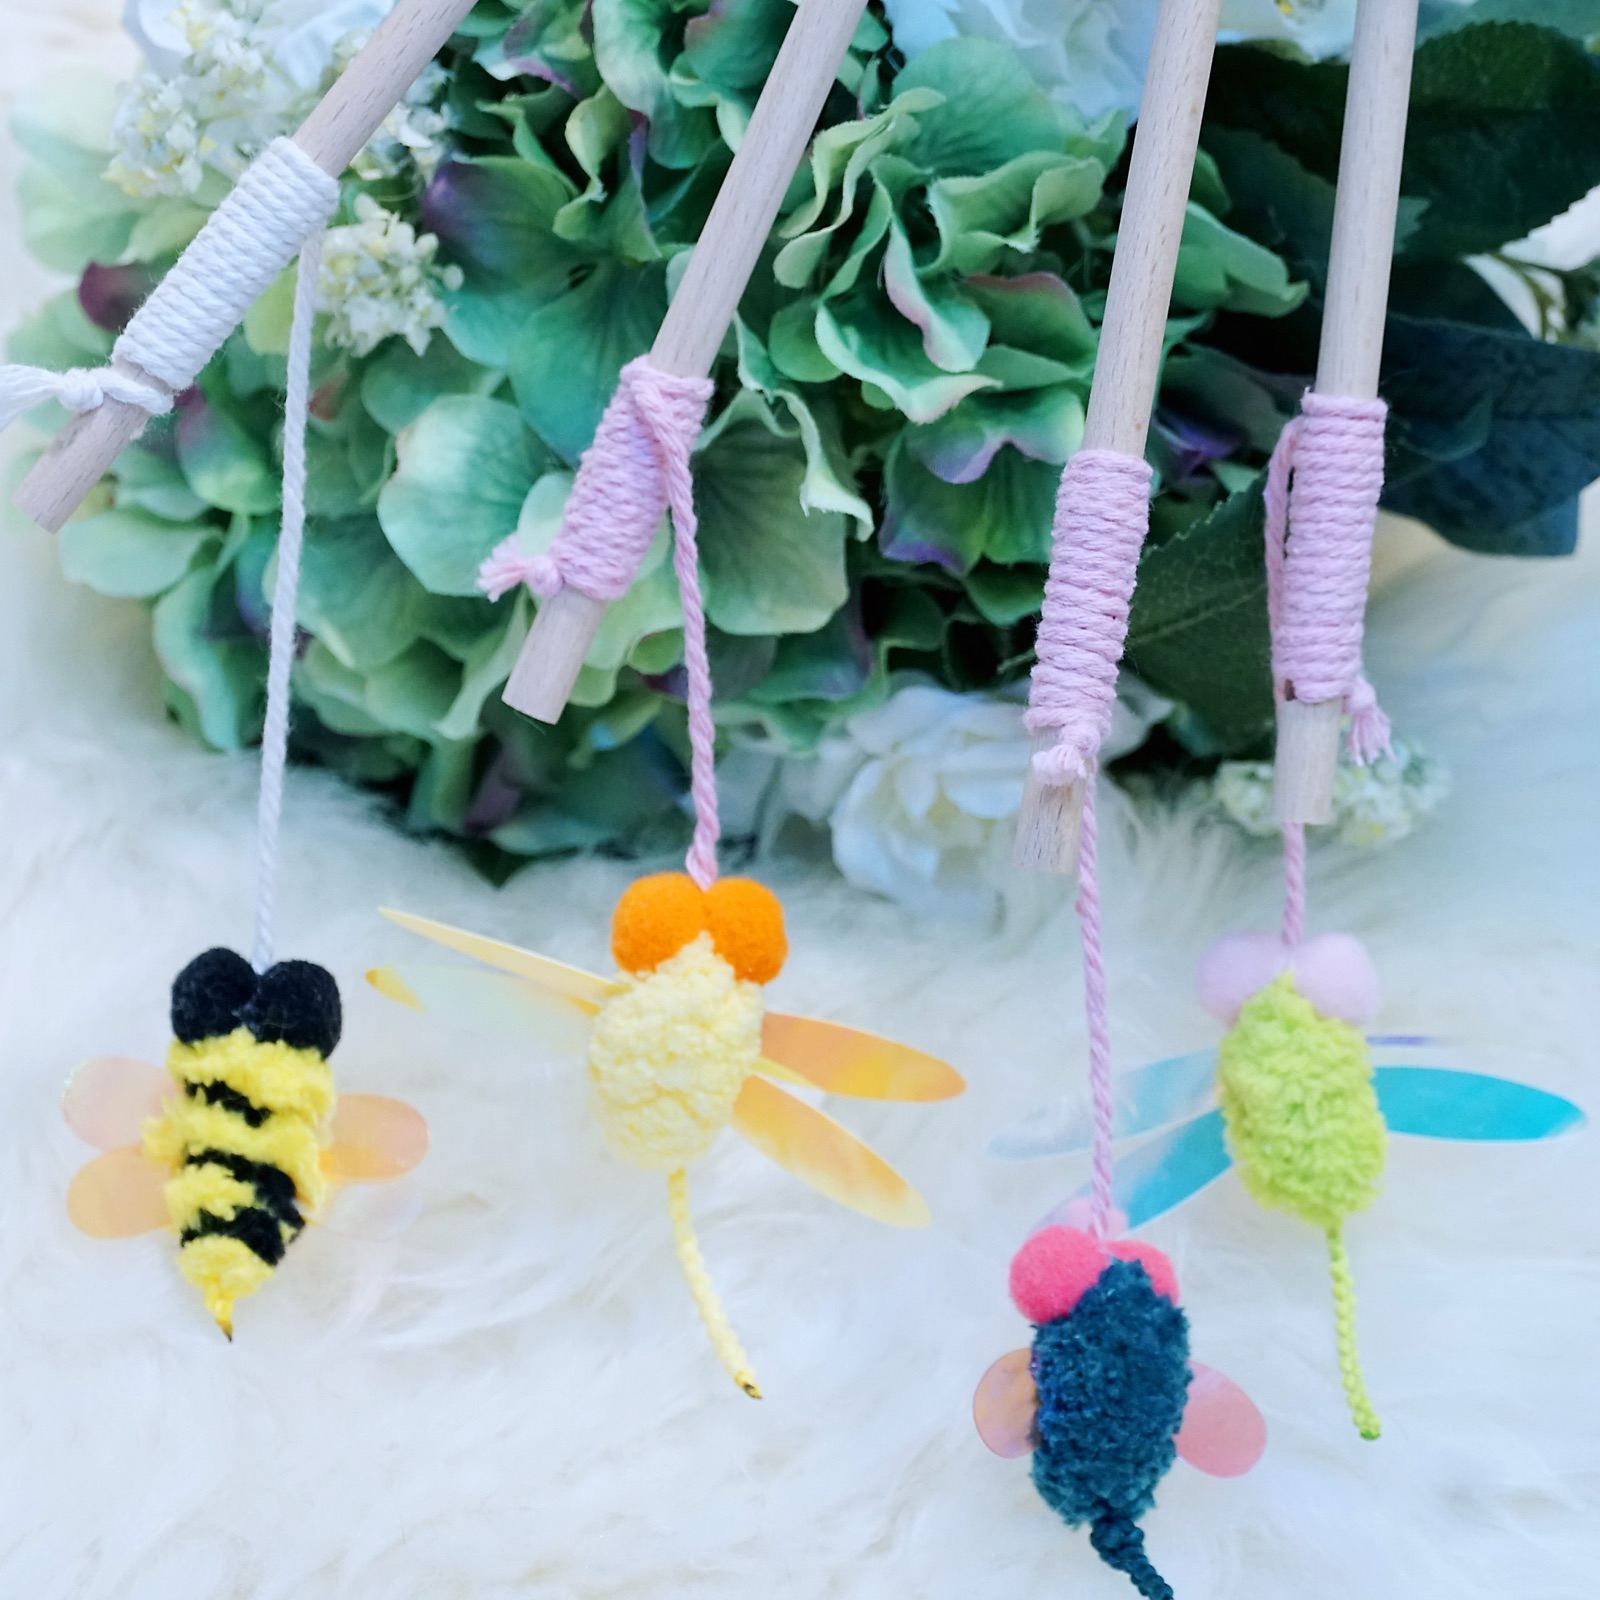 Meow baby cat Side shop insect series cat Teaser stick to stimulate cats hunting nature